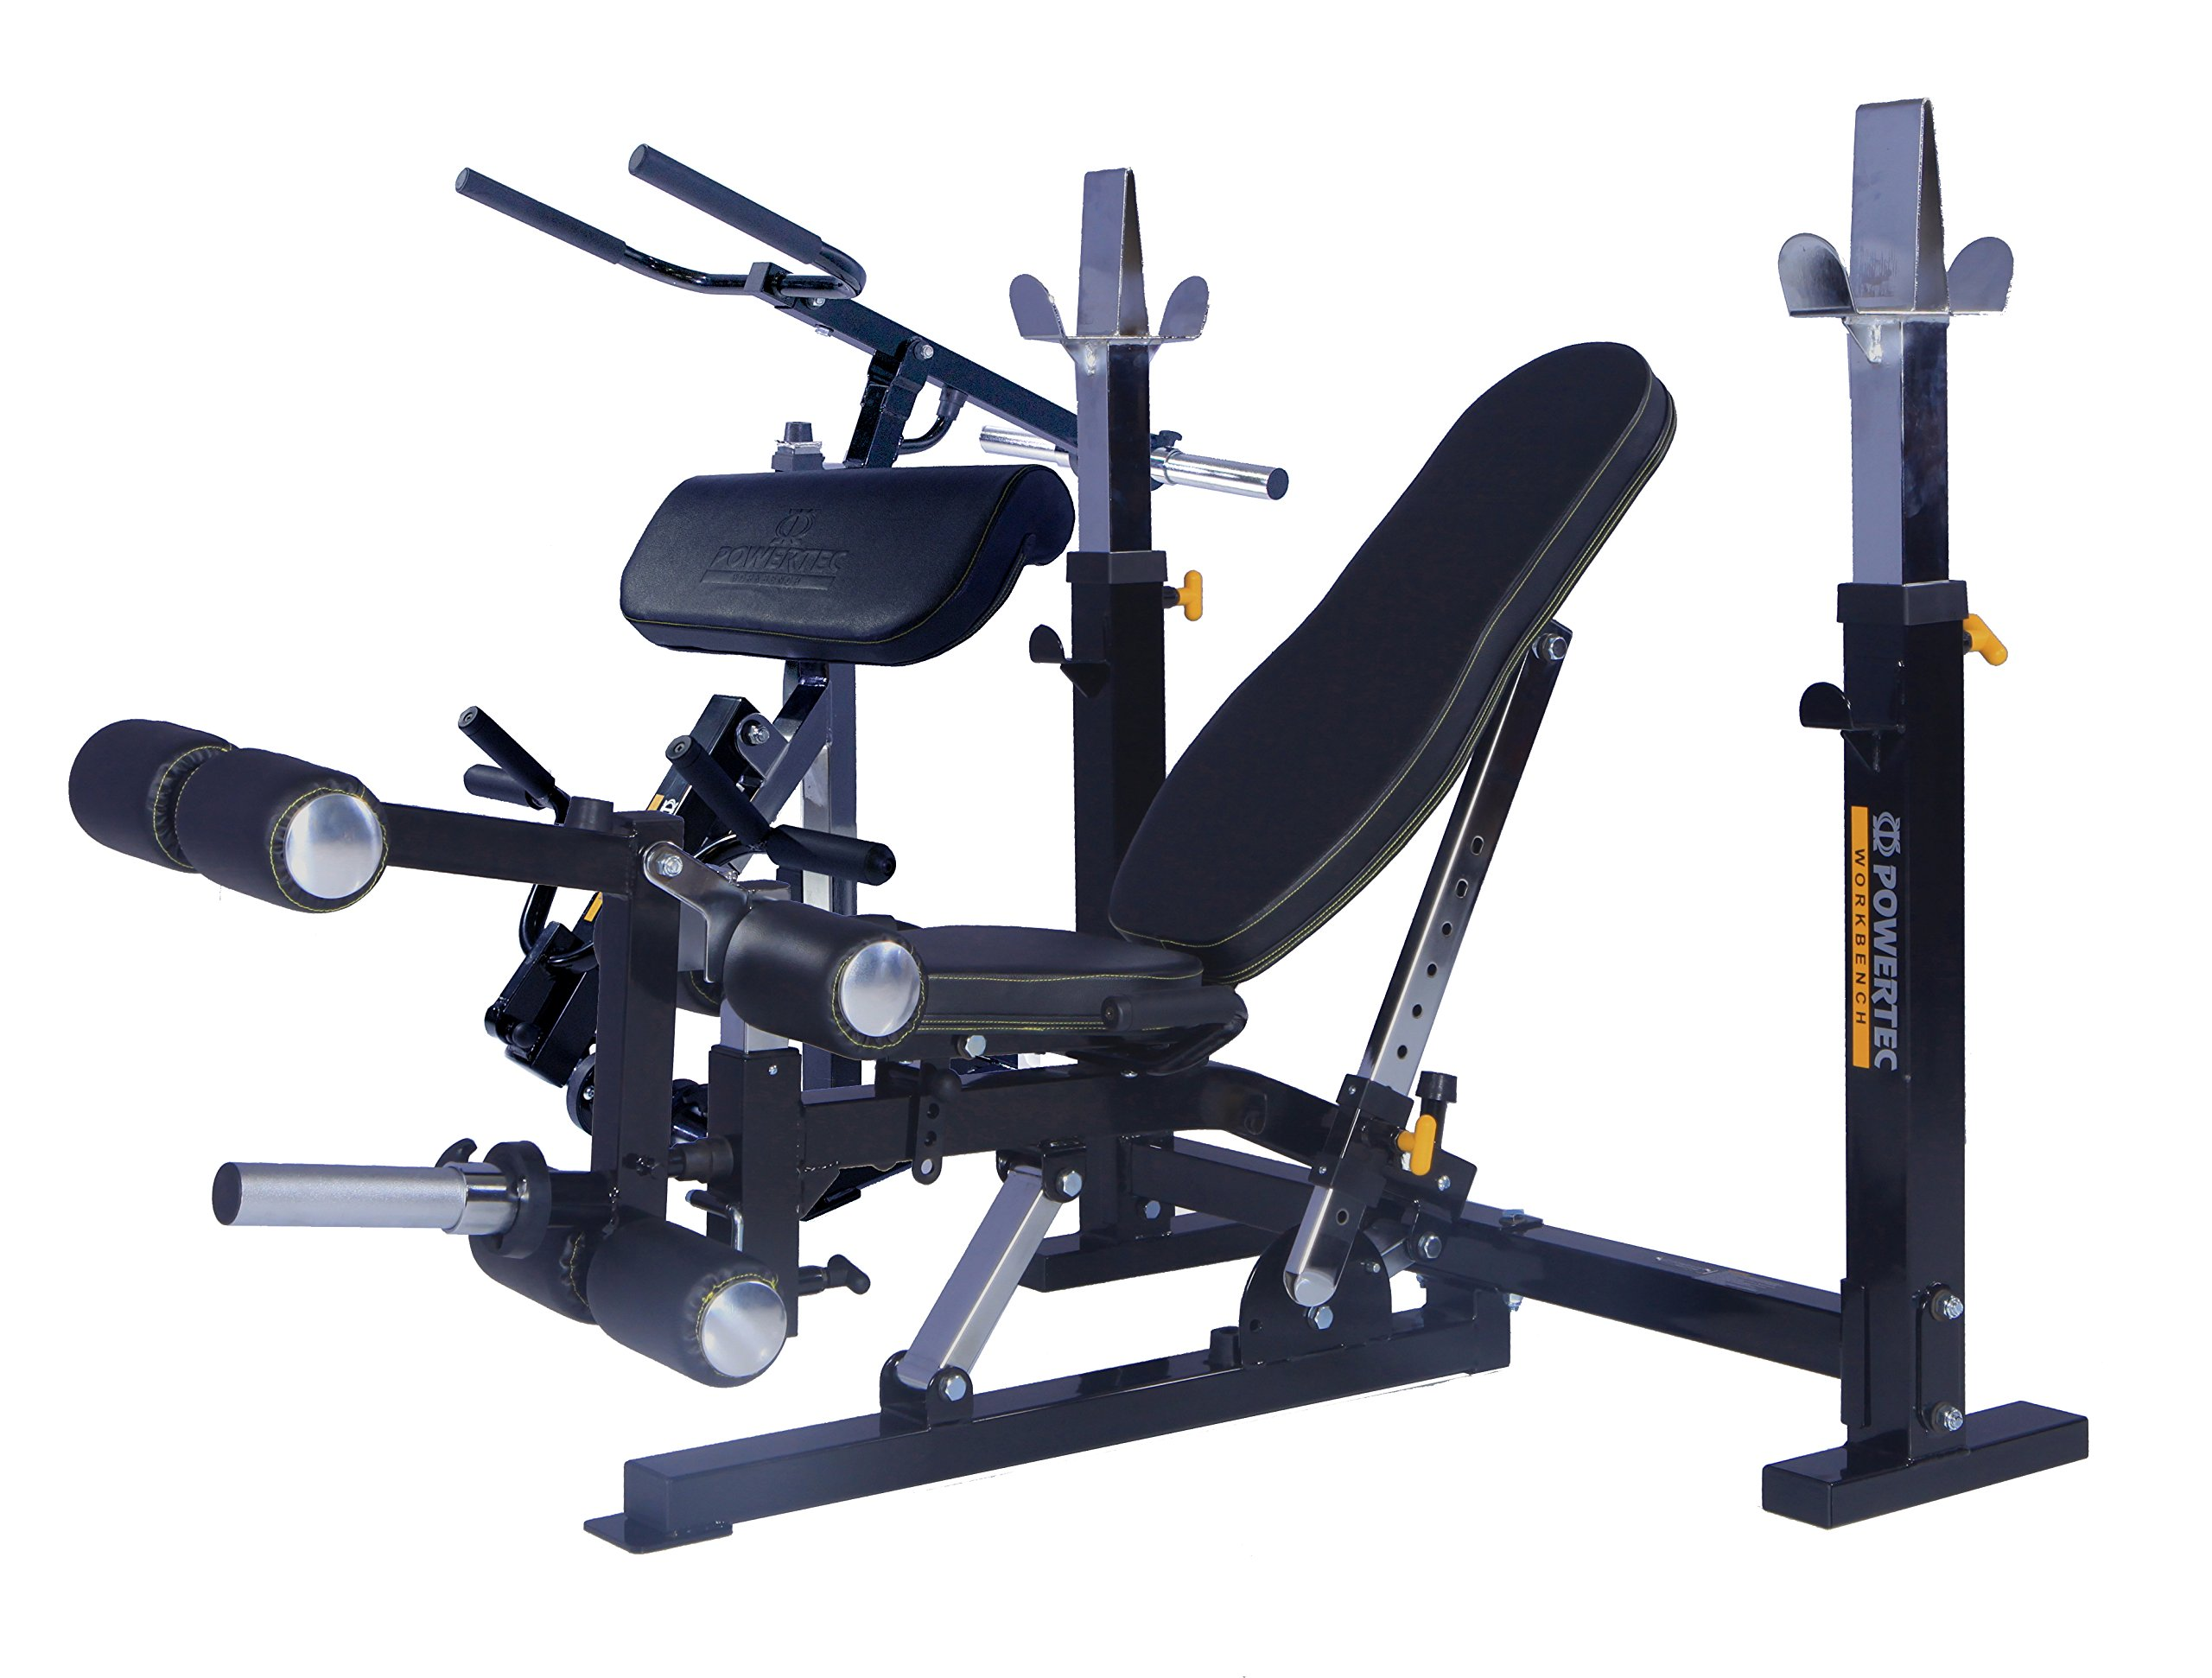 Powertec Workbench Olympic Bench (WB-OB15) + Leg Lift(WB-LLA16) + Dip Machine (WB-DMA16) + Curl Machine (WB-CMA16) by Powertec Fitness